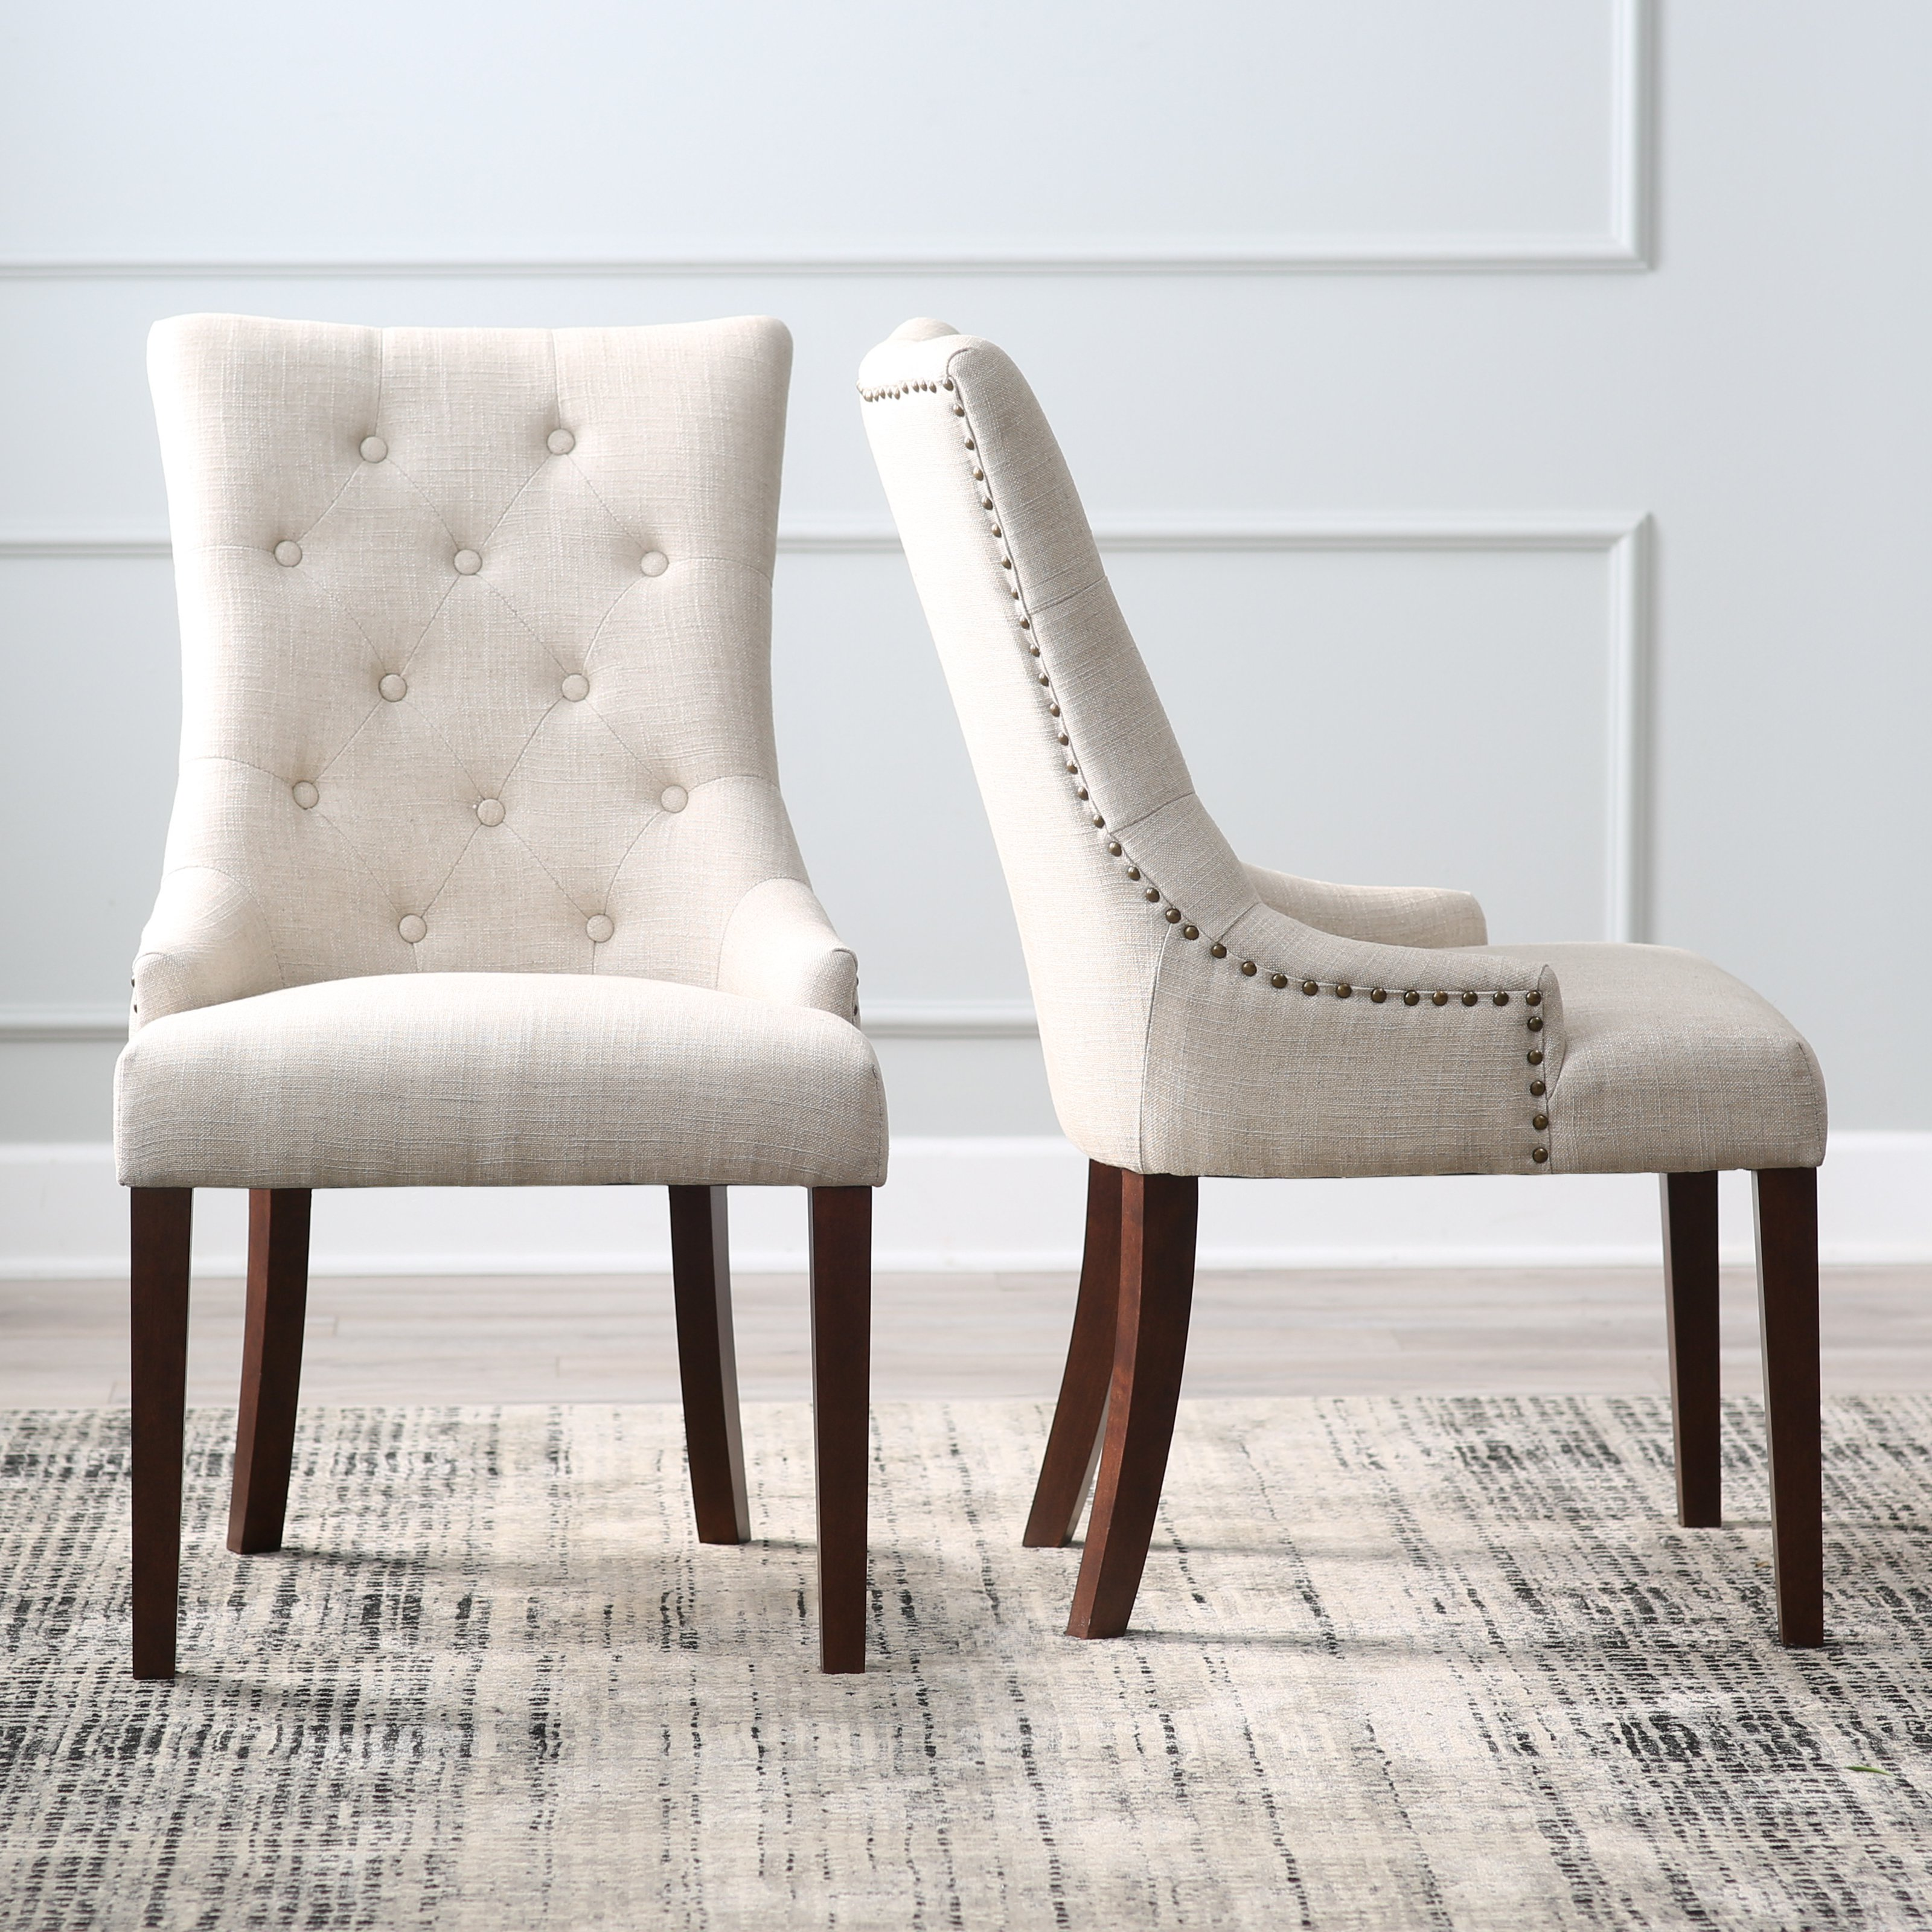 dining chair belham living thomas tufted tweed dining chairs - set of 2 | hayneedle MEZYYWT